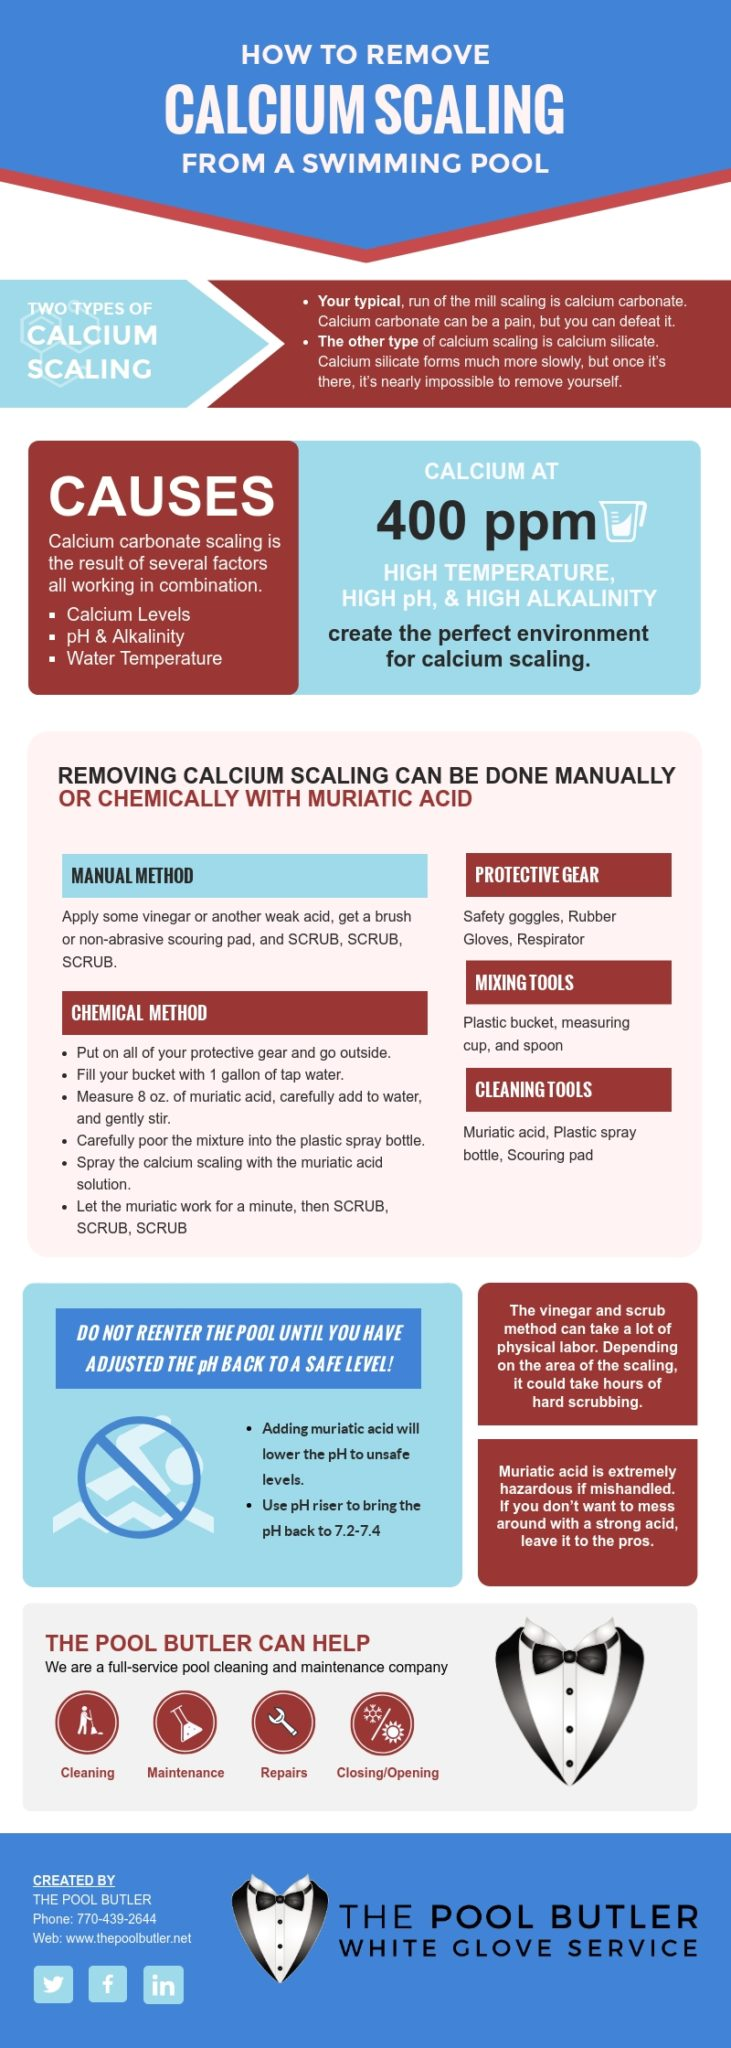 How to Remove Calcium Scaling from a Swimming Pool [infographic]